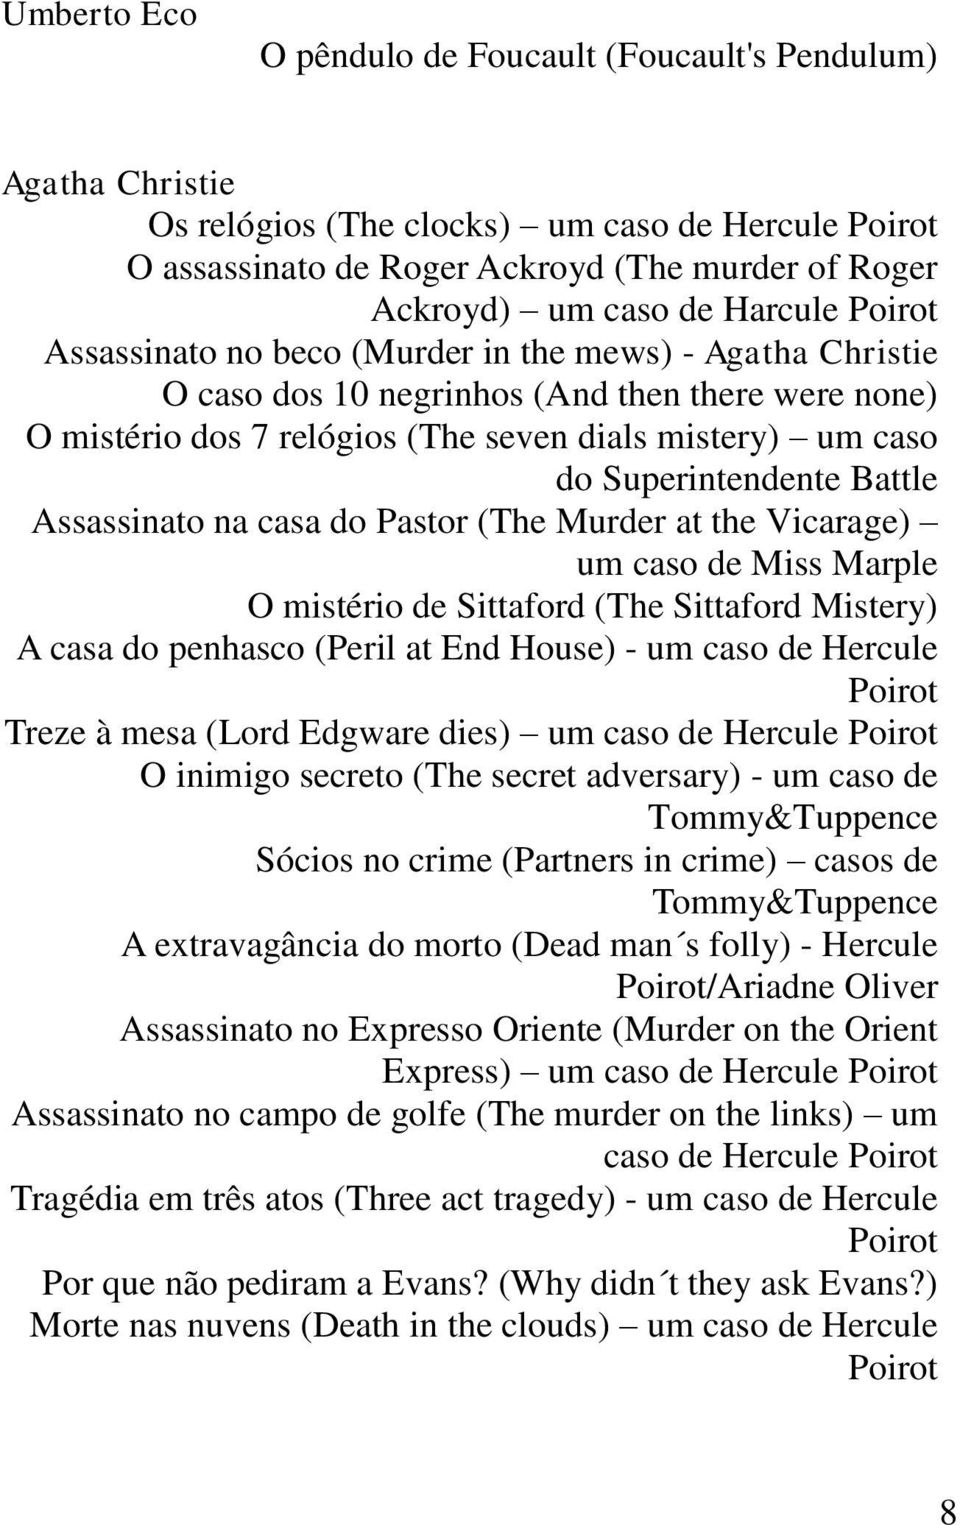 Superintendente Battle Assassinato na casa do Pastor (The Murder at the Vicarage) um caso de Miss Marple O mistério de Sittaford (The Sittaford Mistery) A casa do penhasco (Peril at End House) - um